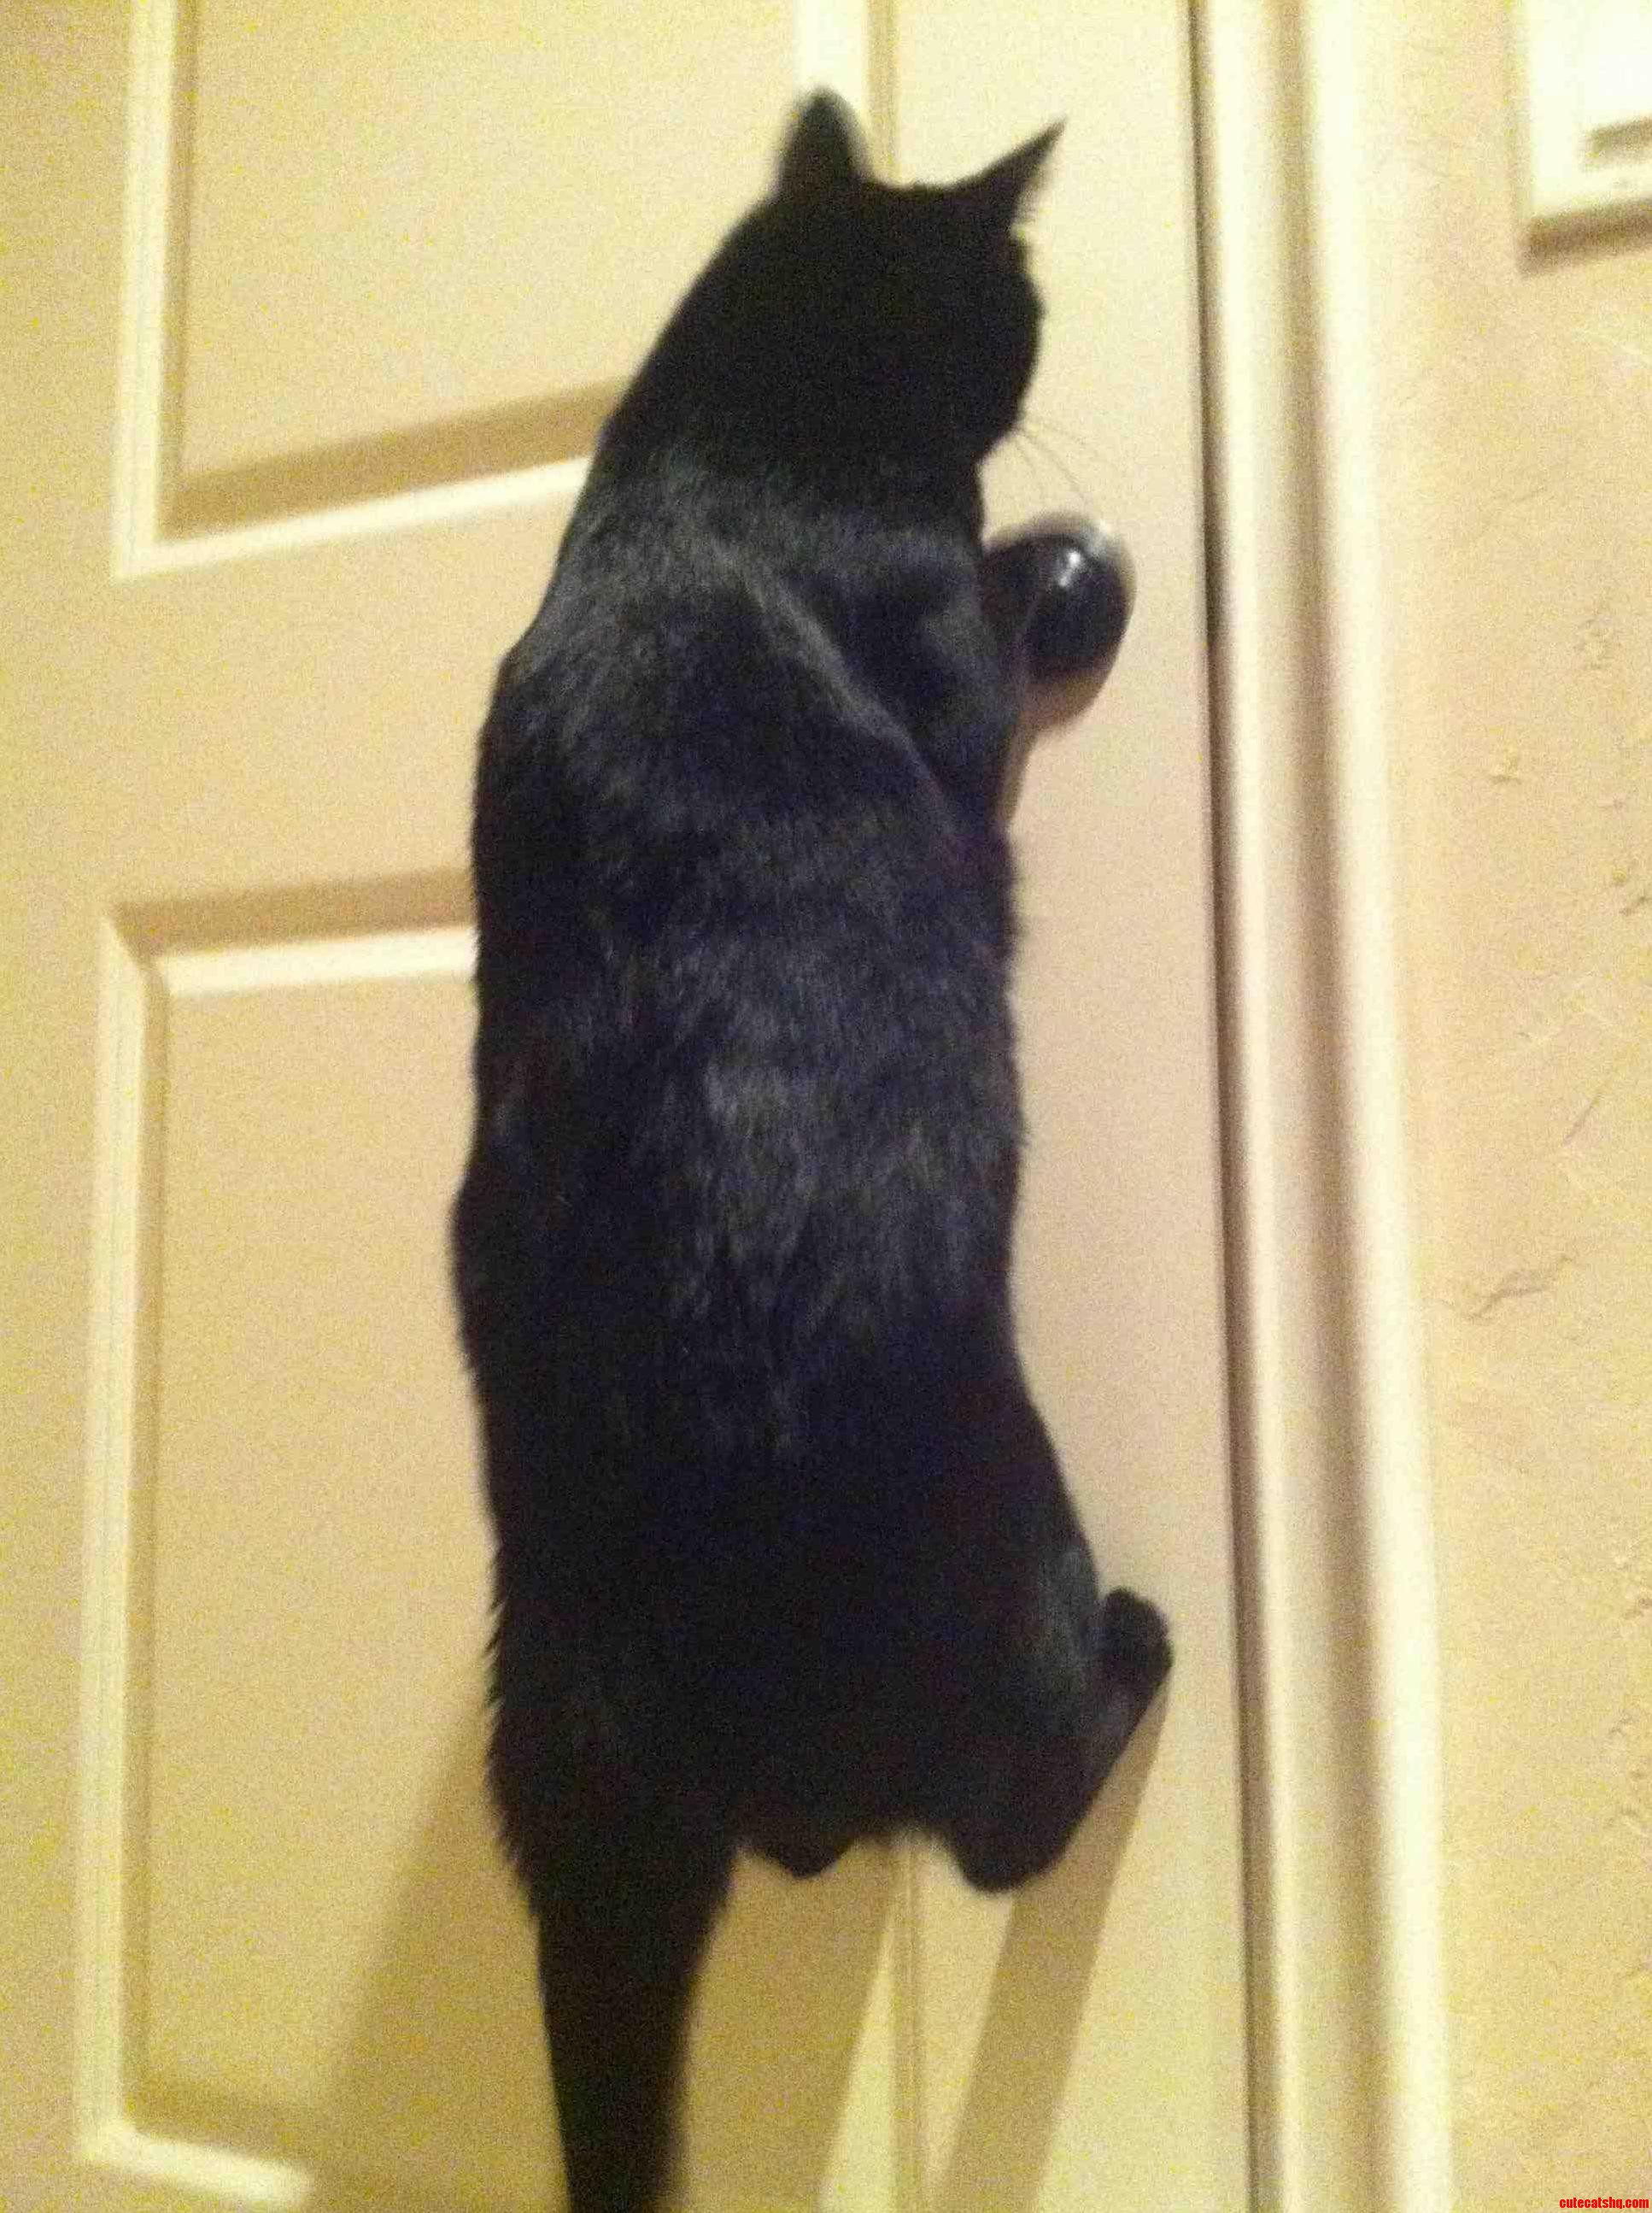 Just My Cat Batman You Know Opening Up Doors And Stuff.